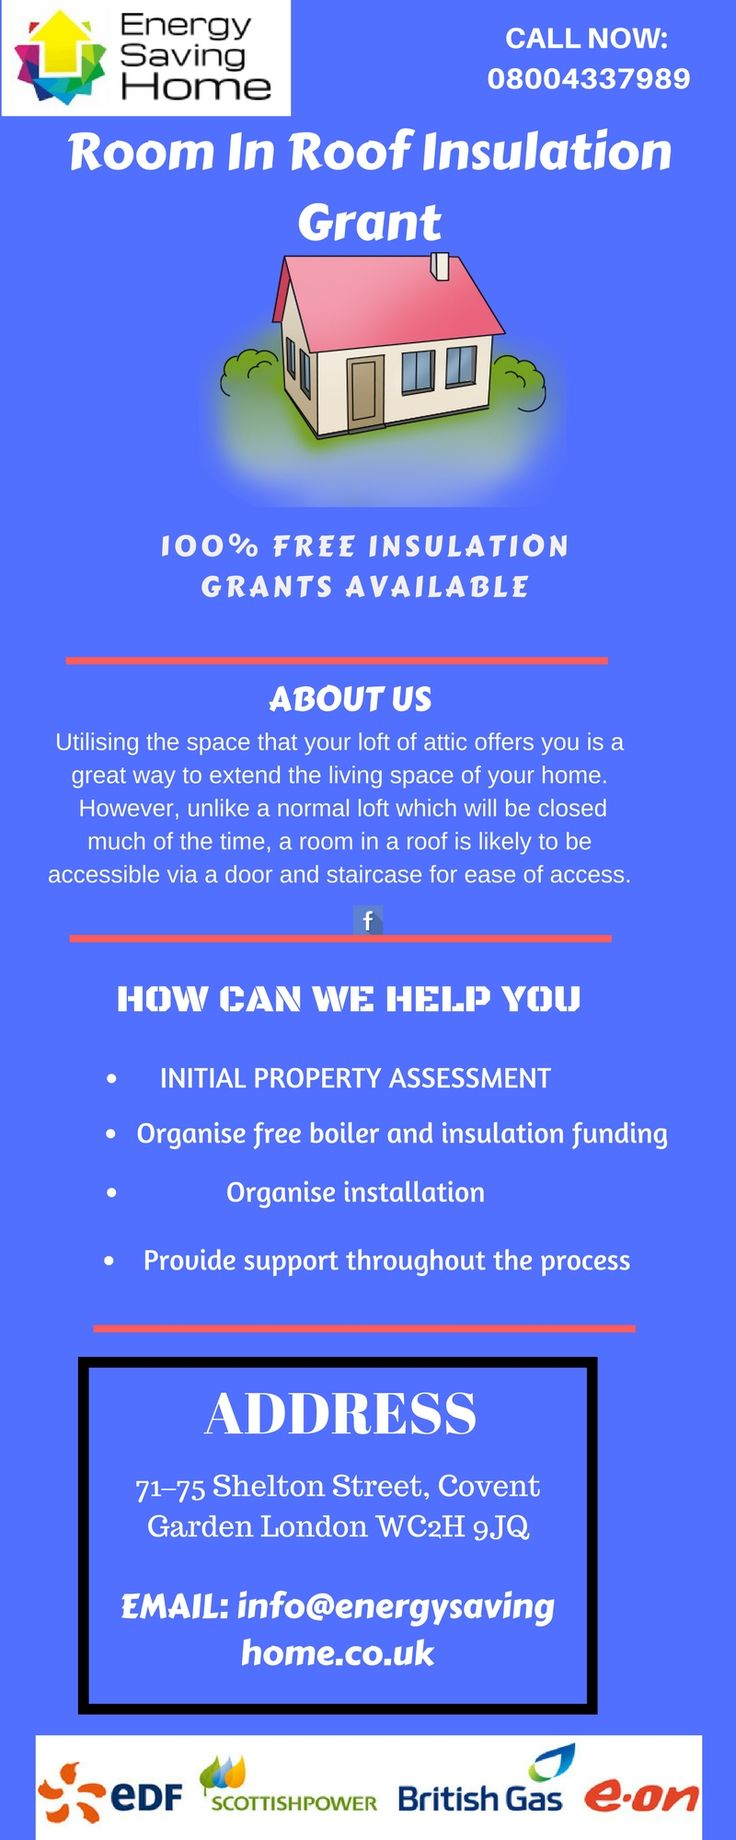 Get free room in roof insulation grants under Government roof insulation Scheme. Save money by Retaining the heat in your roof and reduce heating bills.